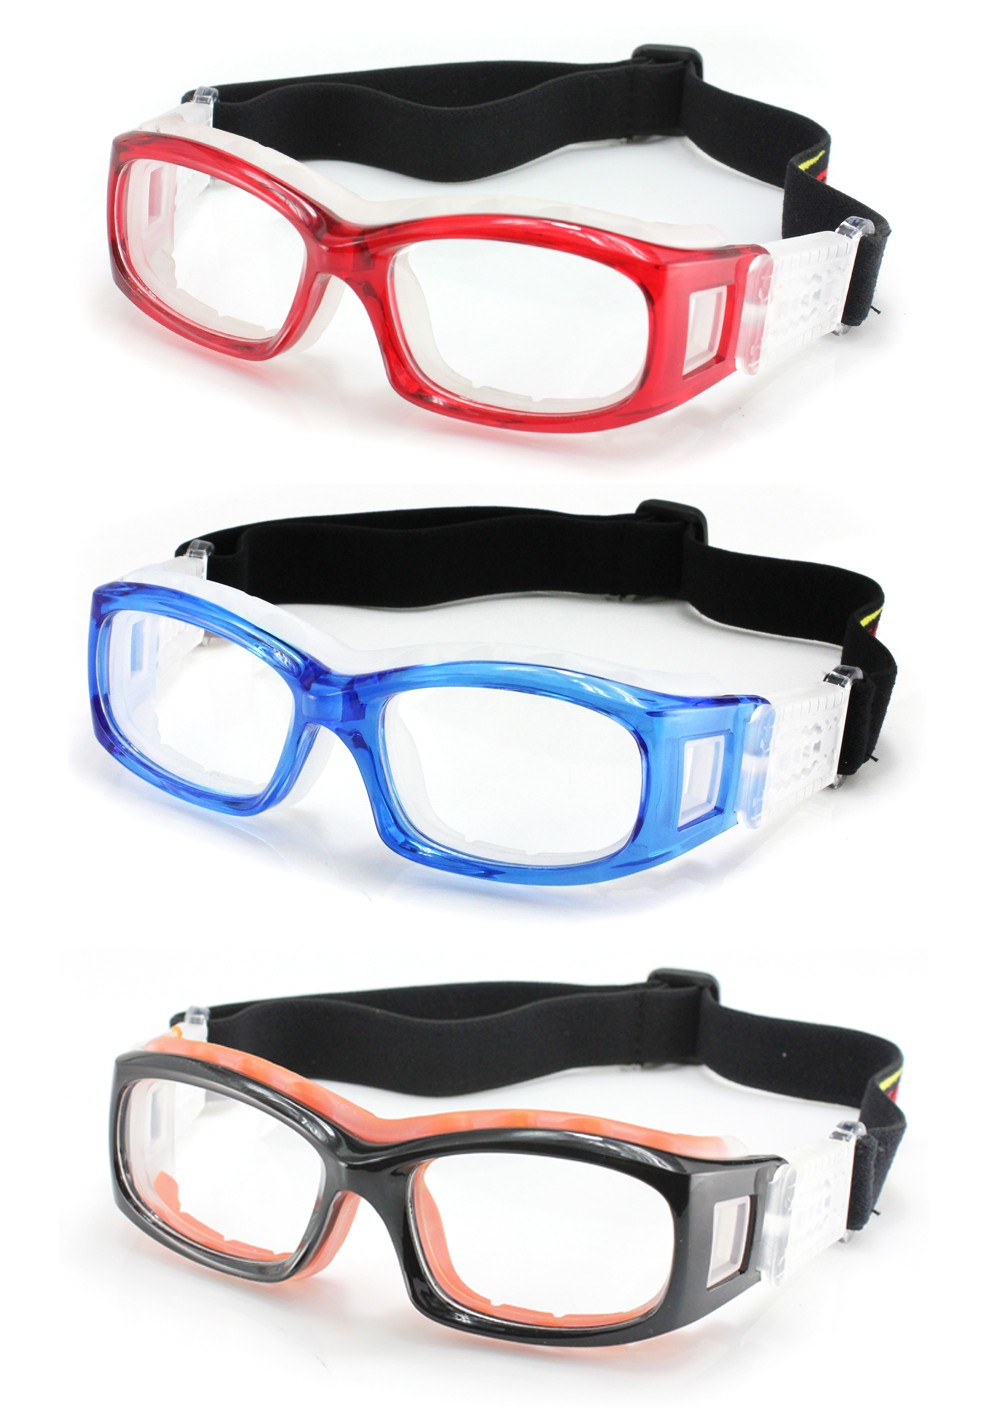 fa990527662 OEM 2016 New Style Foldable Sports Basketball Goggles Kids Sports Eyewear  Basketball Dribble Goggles With Flexible Strap